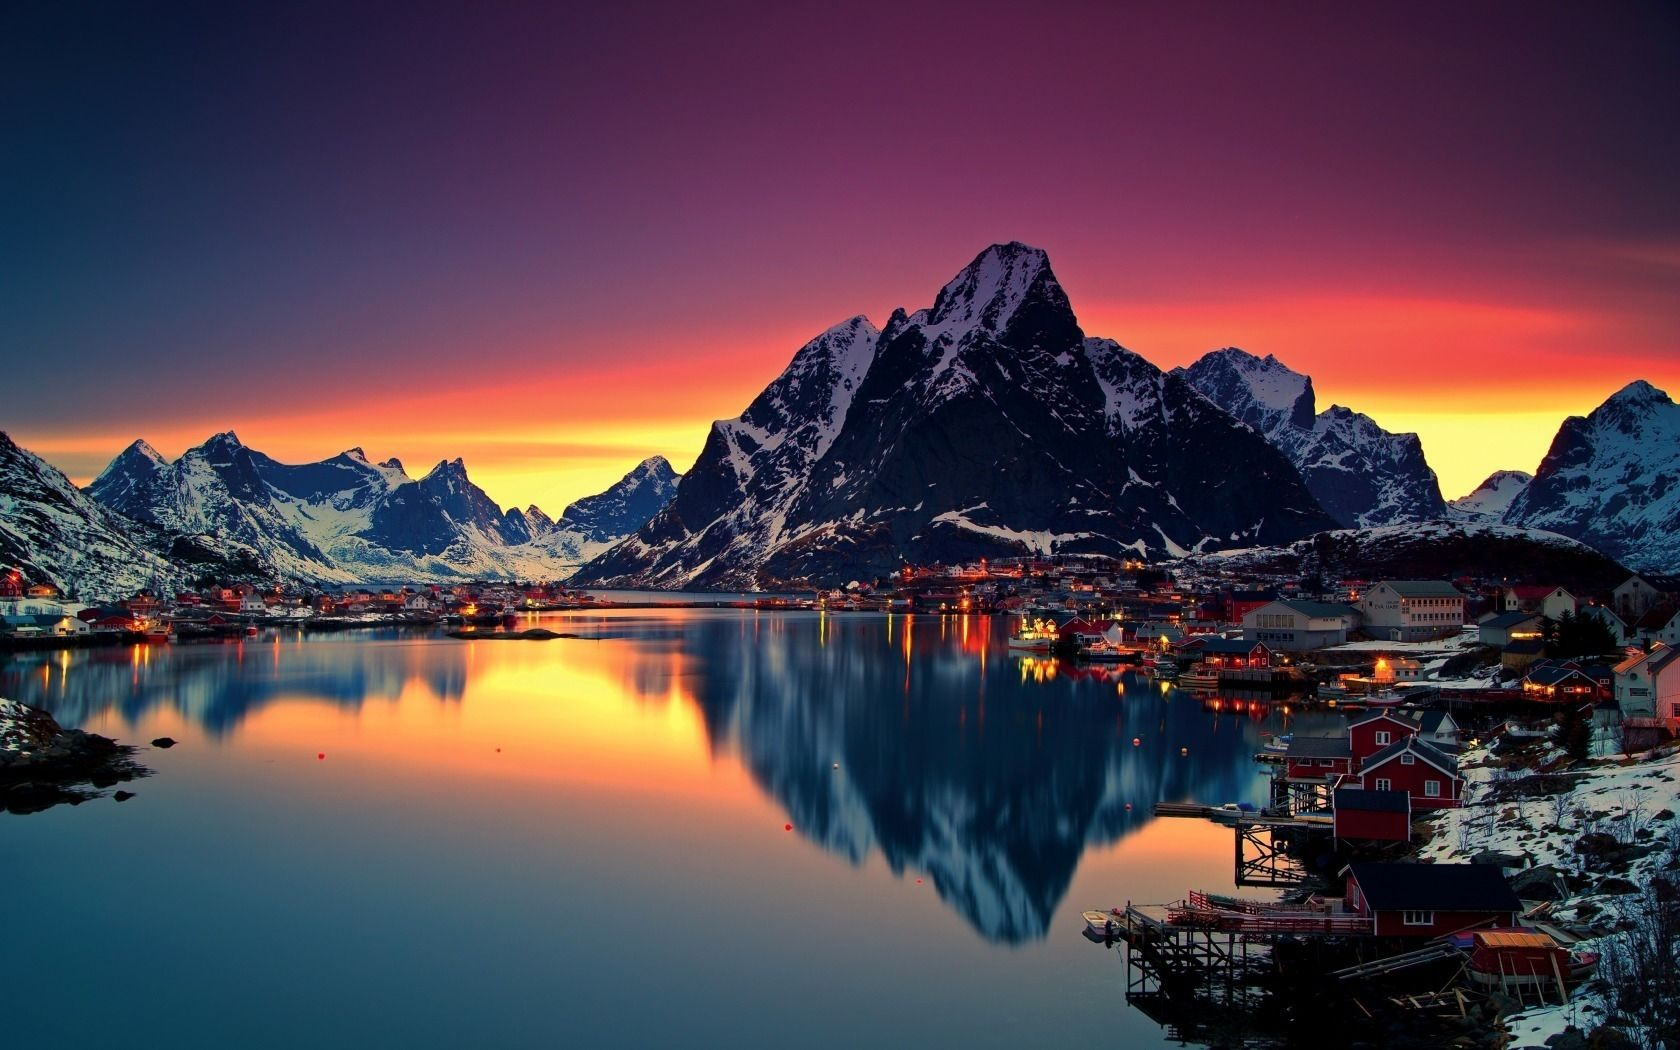 4k Wallpaper Full Hd Sdeerwallpaper Lofoten Lugares Incriveis Lugares Bonitos